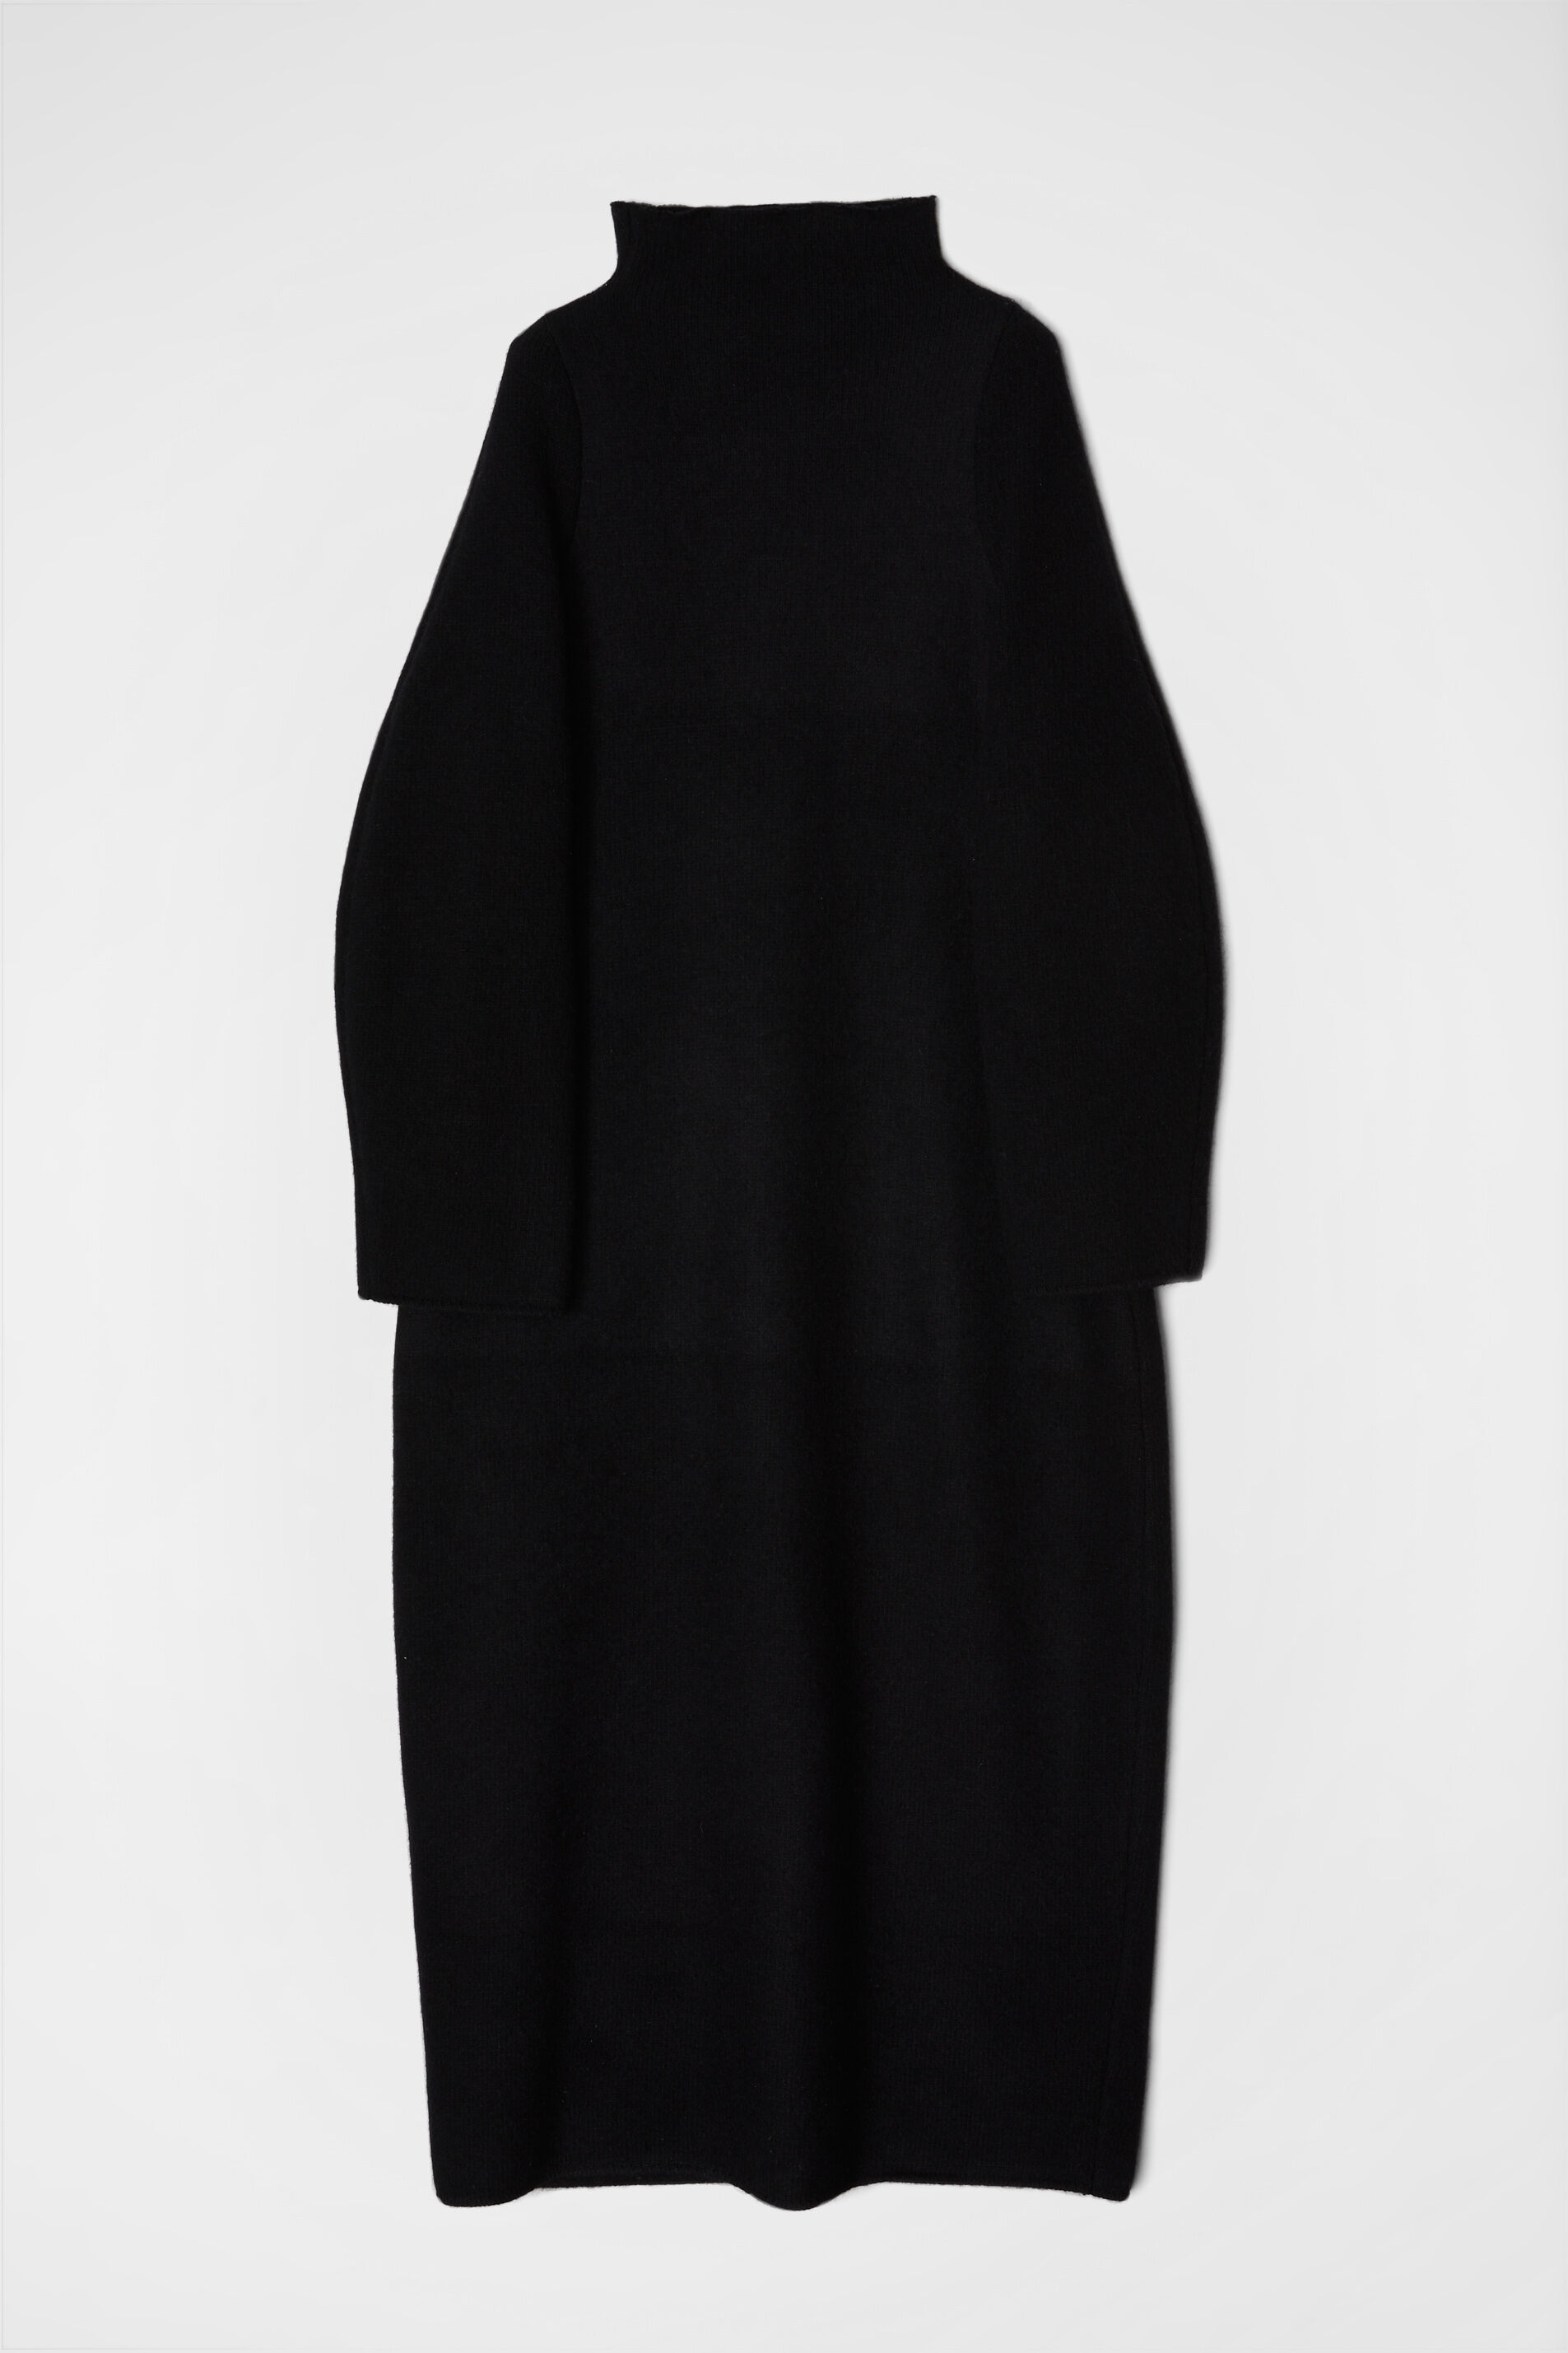 Knit Dress, black, large